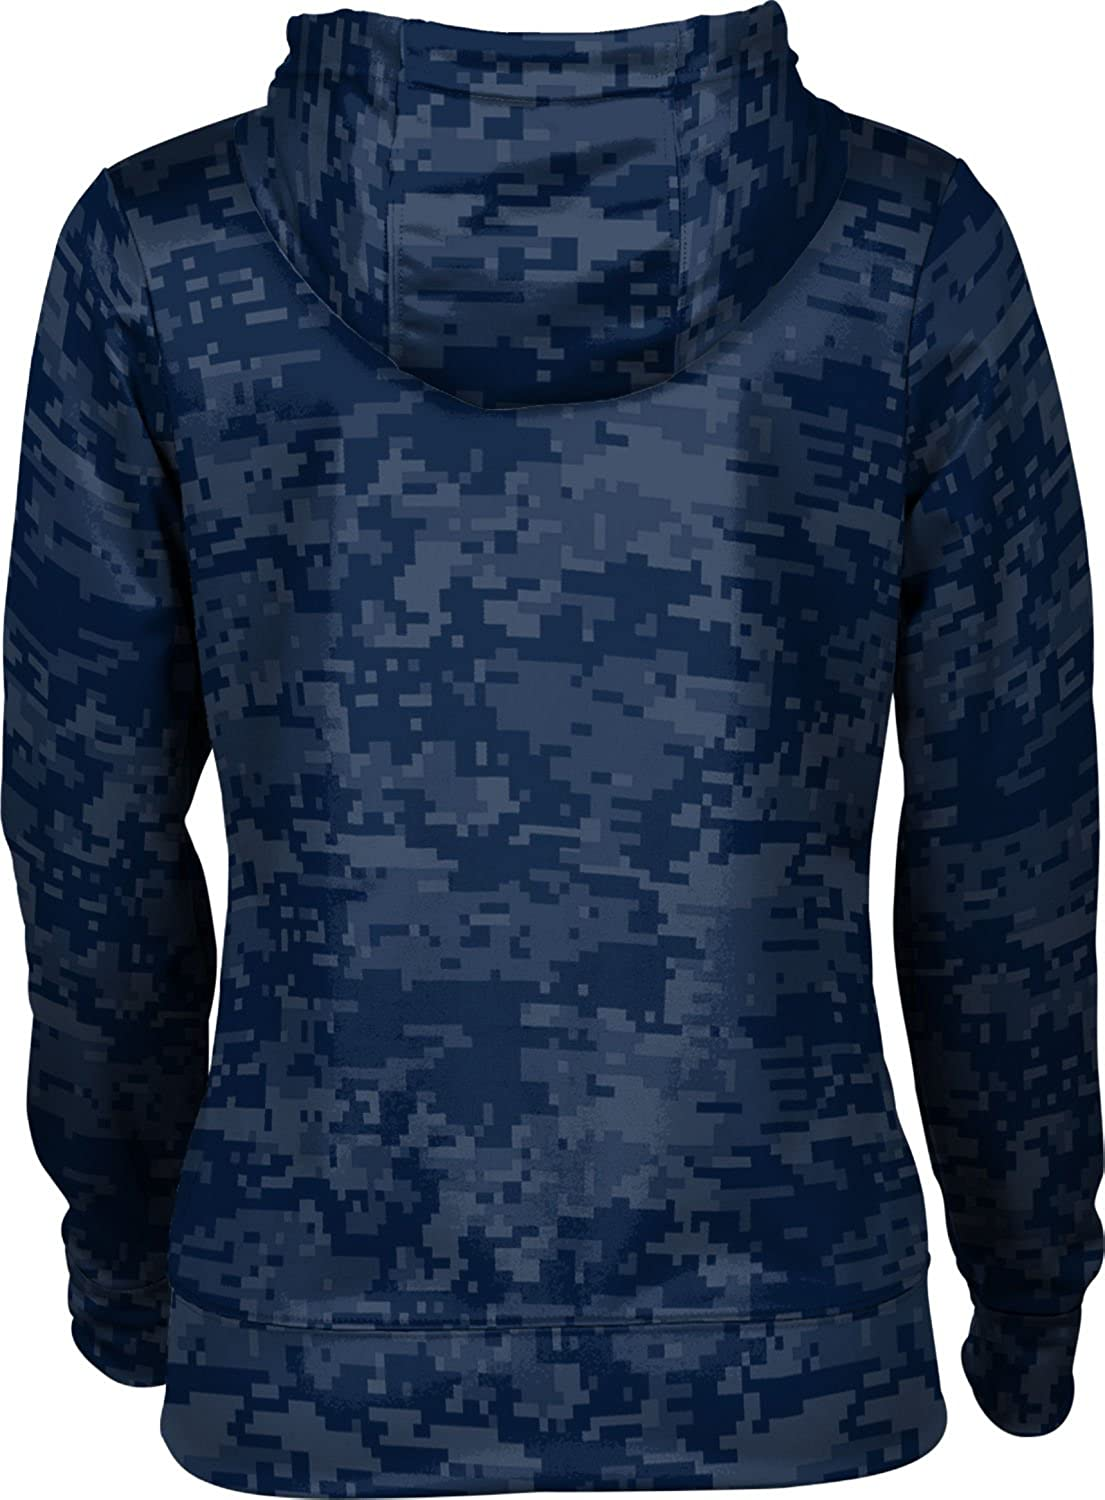 School Spirit Sweatshirt Digi Camo ProSphere Florida International University Girls Zipper Hoodie